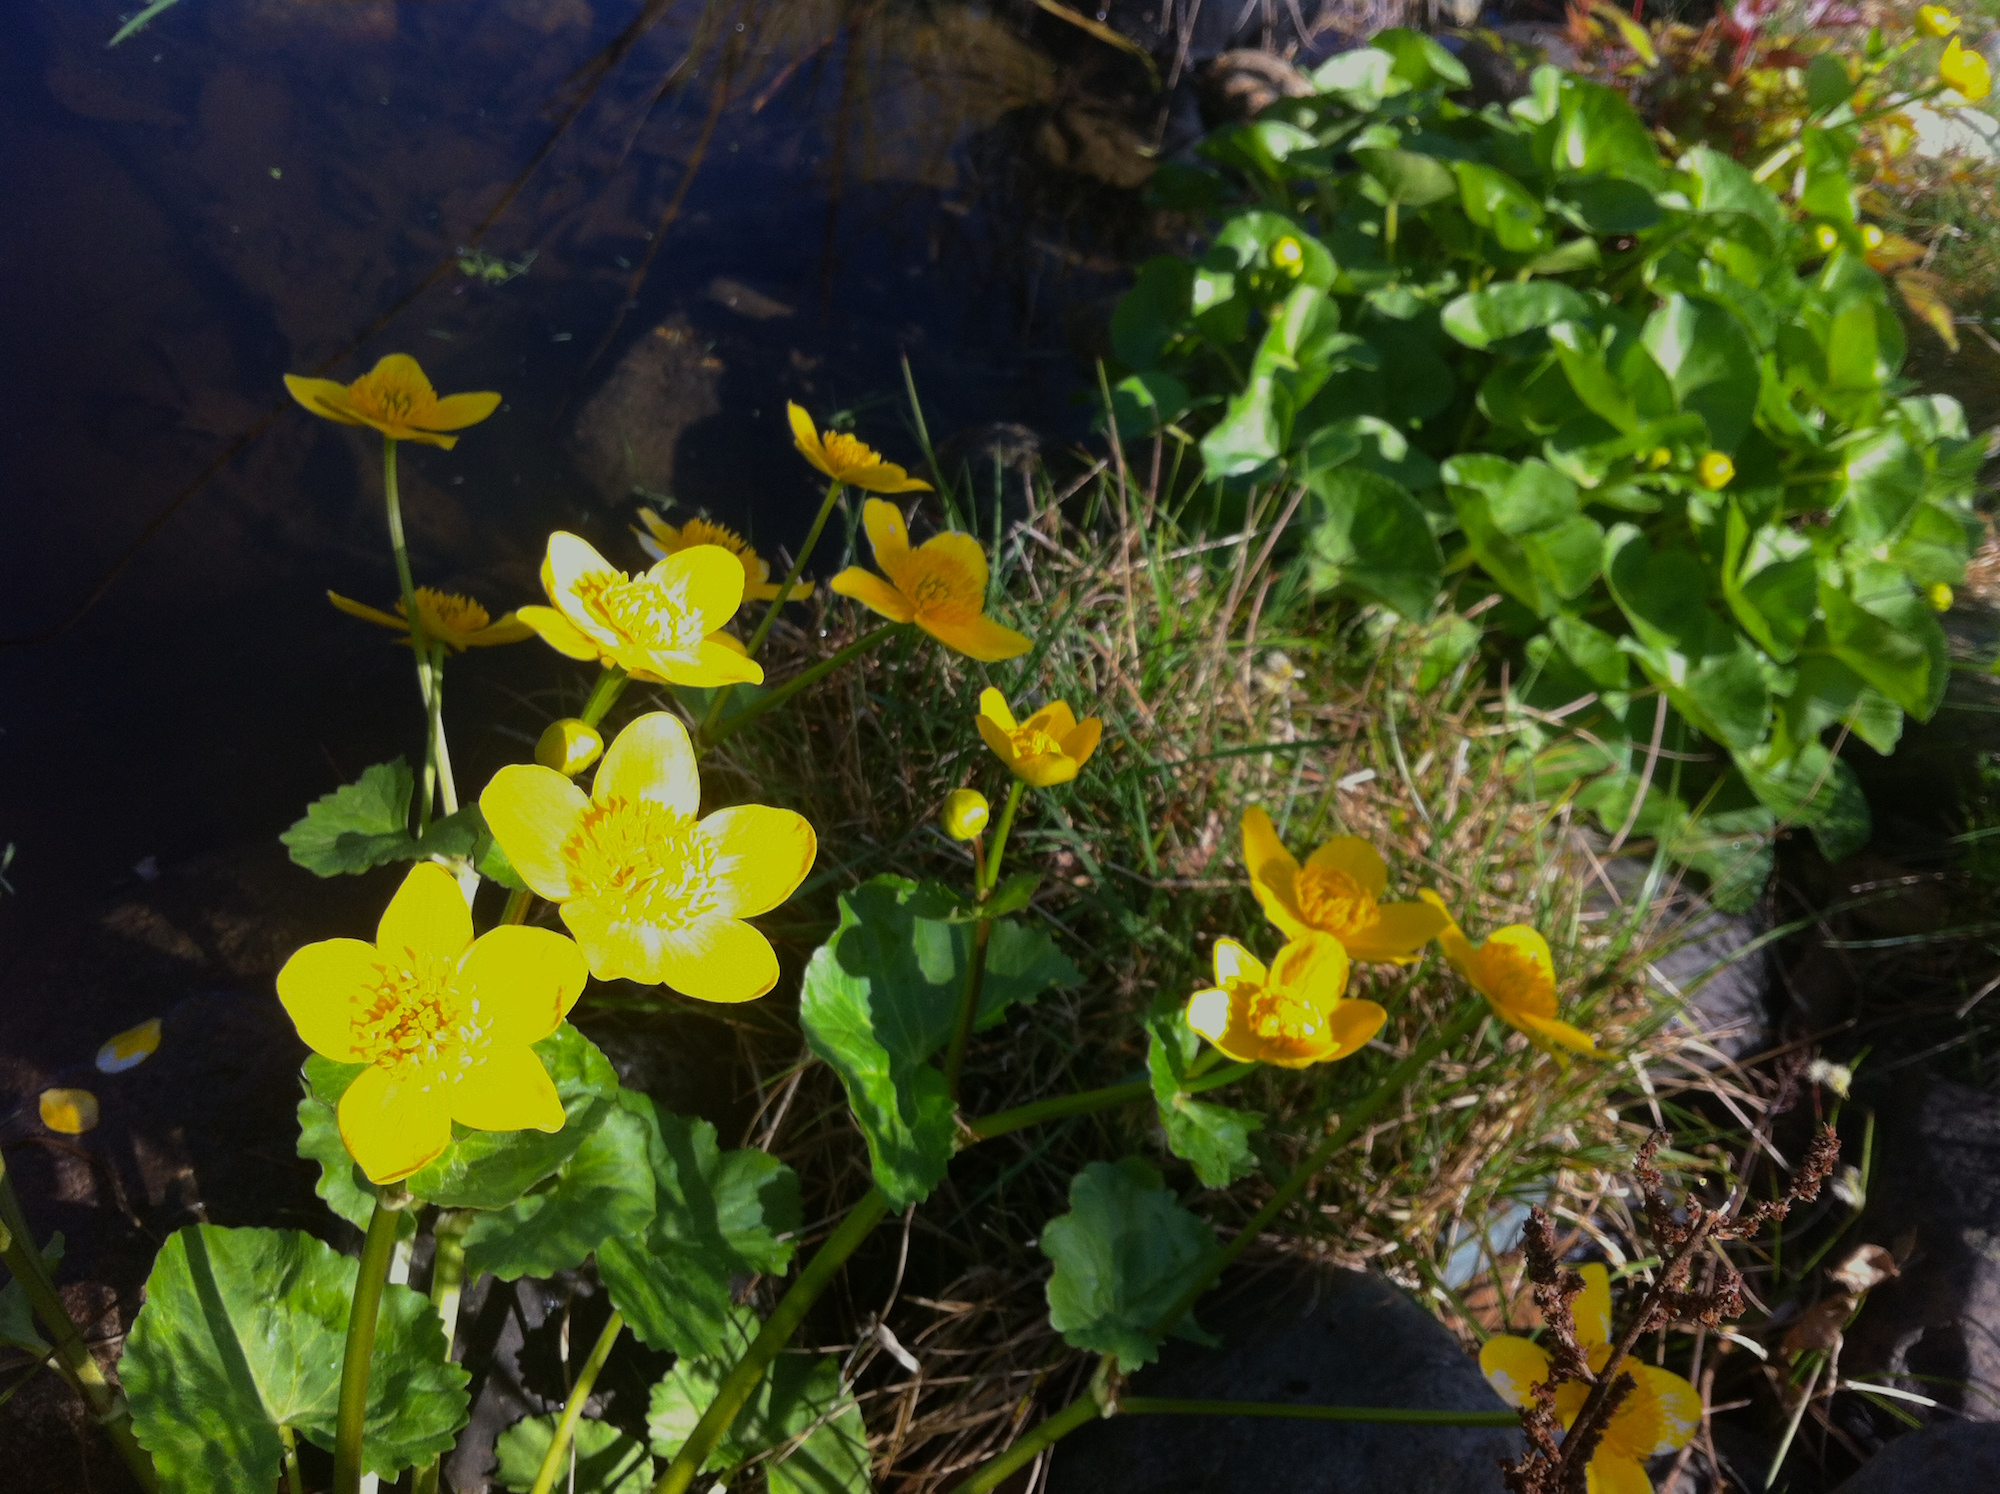 Marsh marigolds, the first pond plants to bloom, will seed themselves if well pollinated.